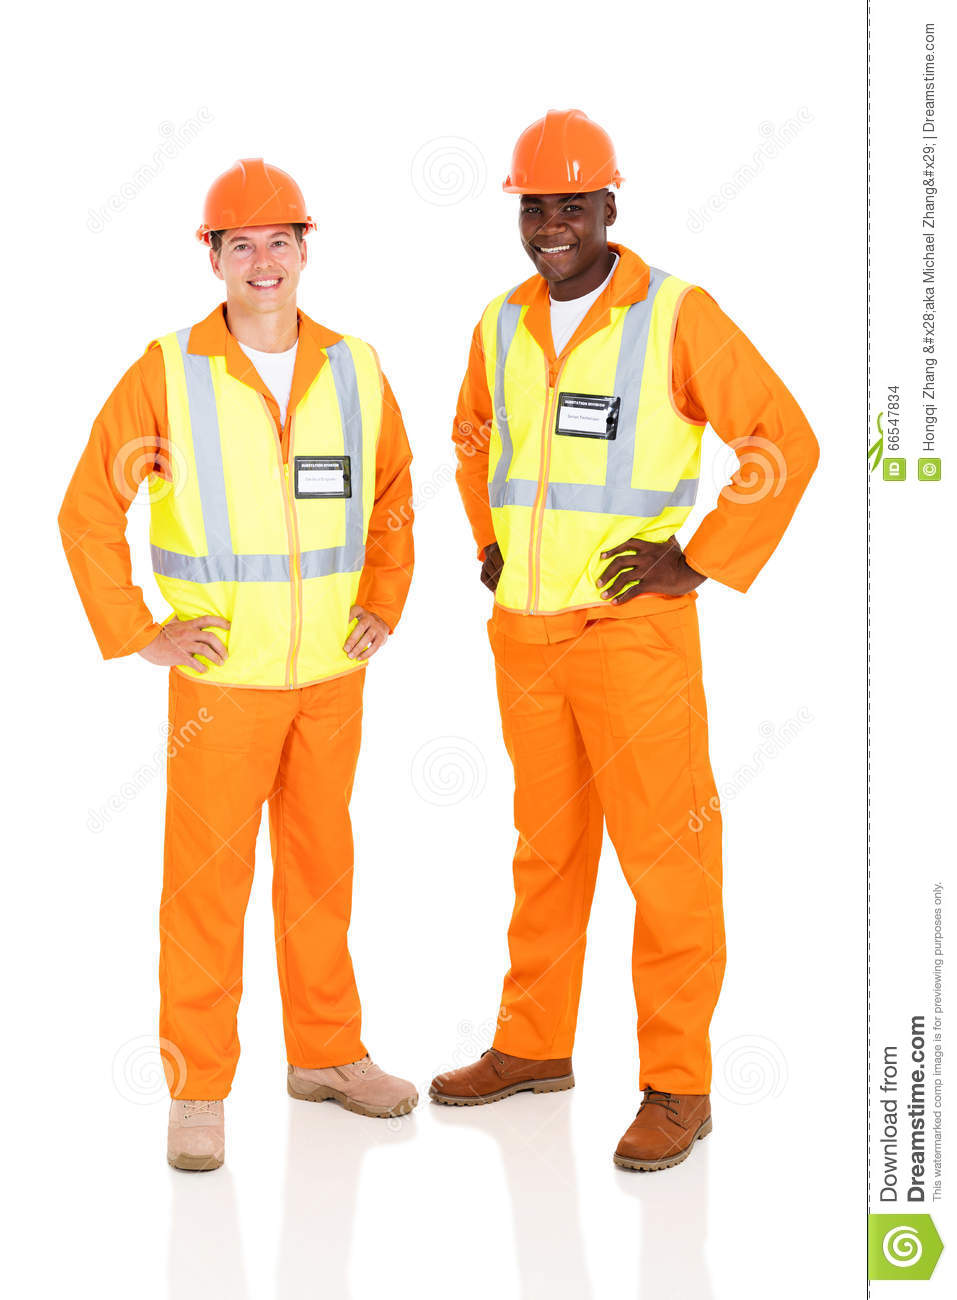 Electrical engineers standing